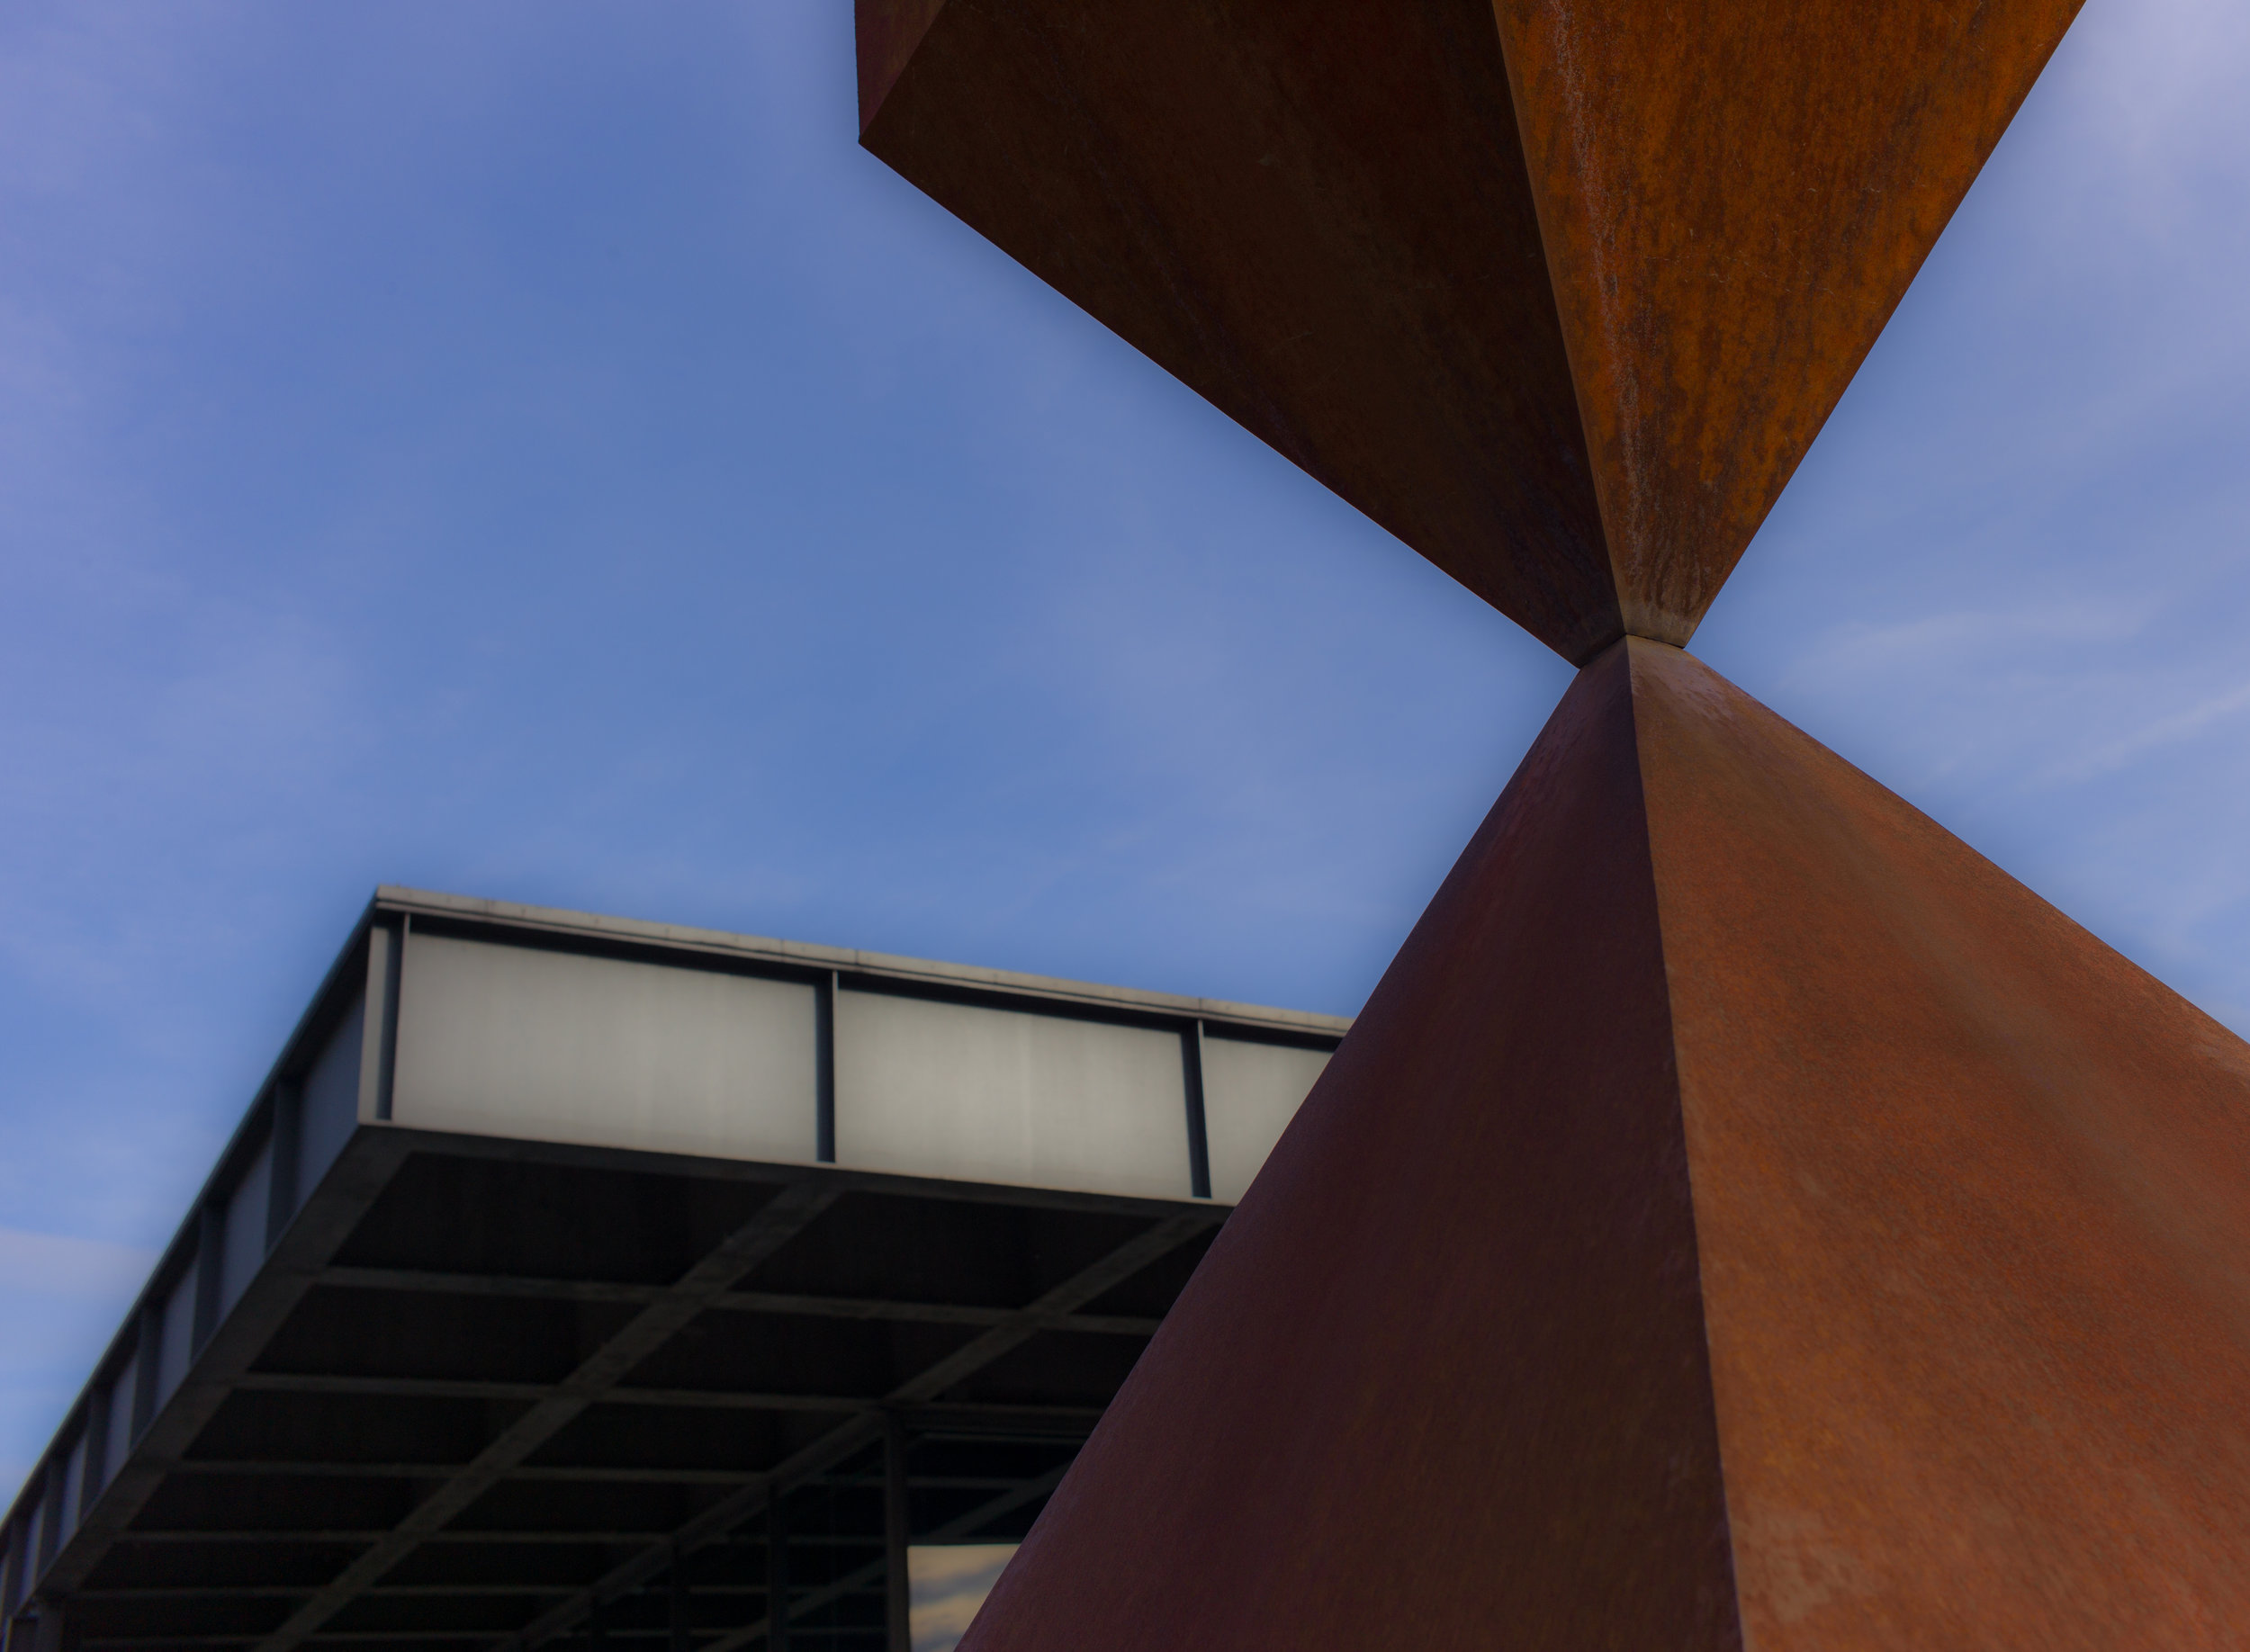 Sculpture 2, Neue Nationalgalerie